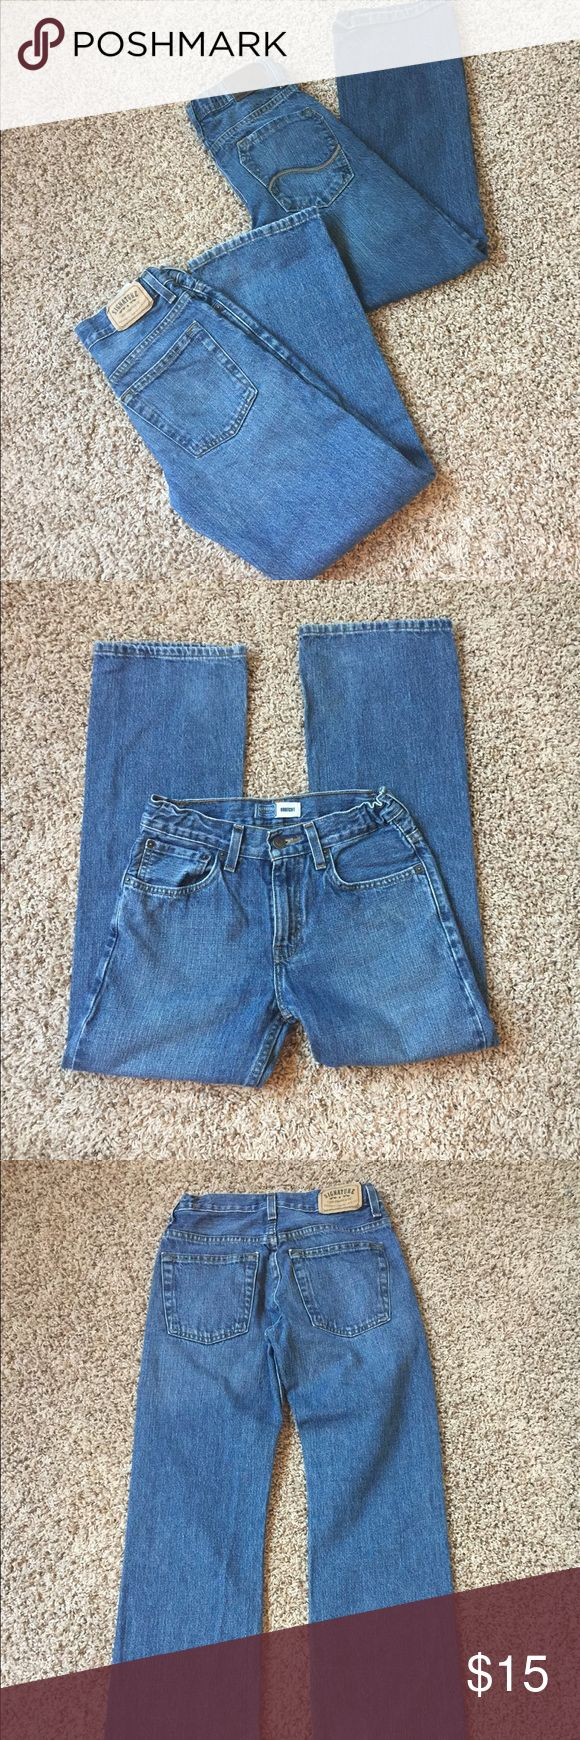 Two Pair Boy's Jeans Size 12 Both Jeans are Size 12 Regular. Lee Dungarees and Levi's Signature with adjustable waists. Lee pair has a couple of worn spots on knees. Levi's are in excellent preowned condition- no flaws noted. Smoke free home. Signature by Levi Strauss Bottoms Jeans